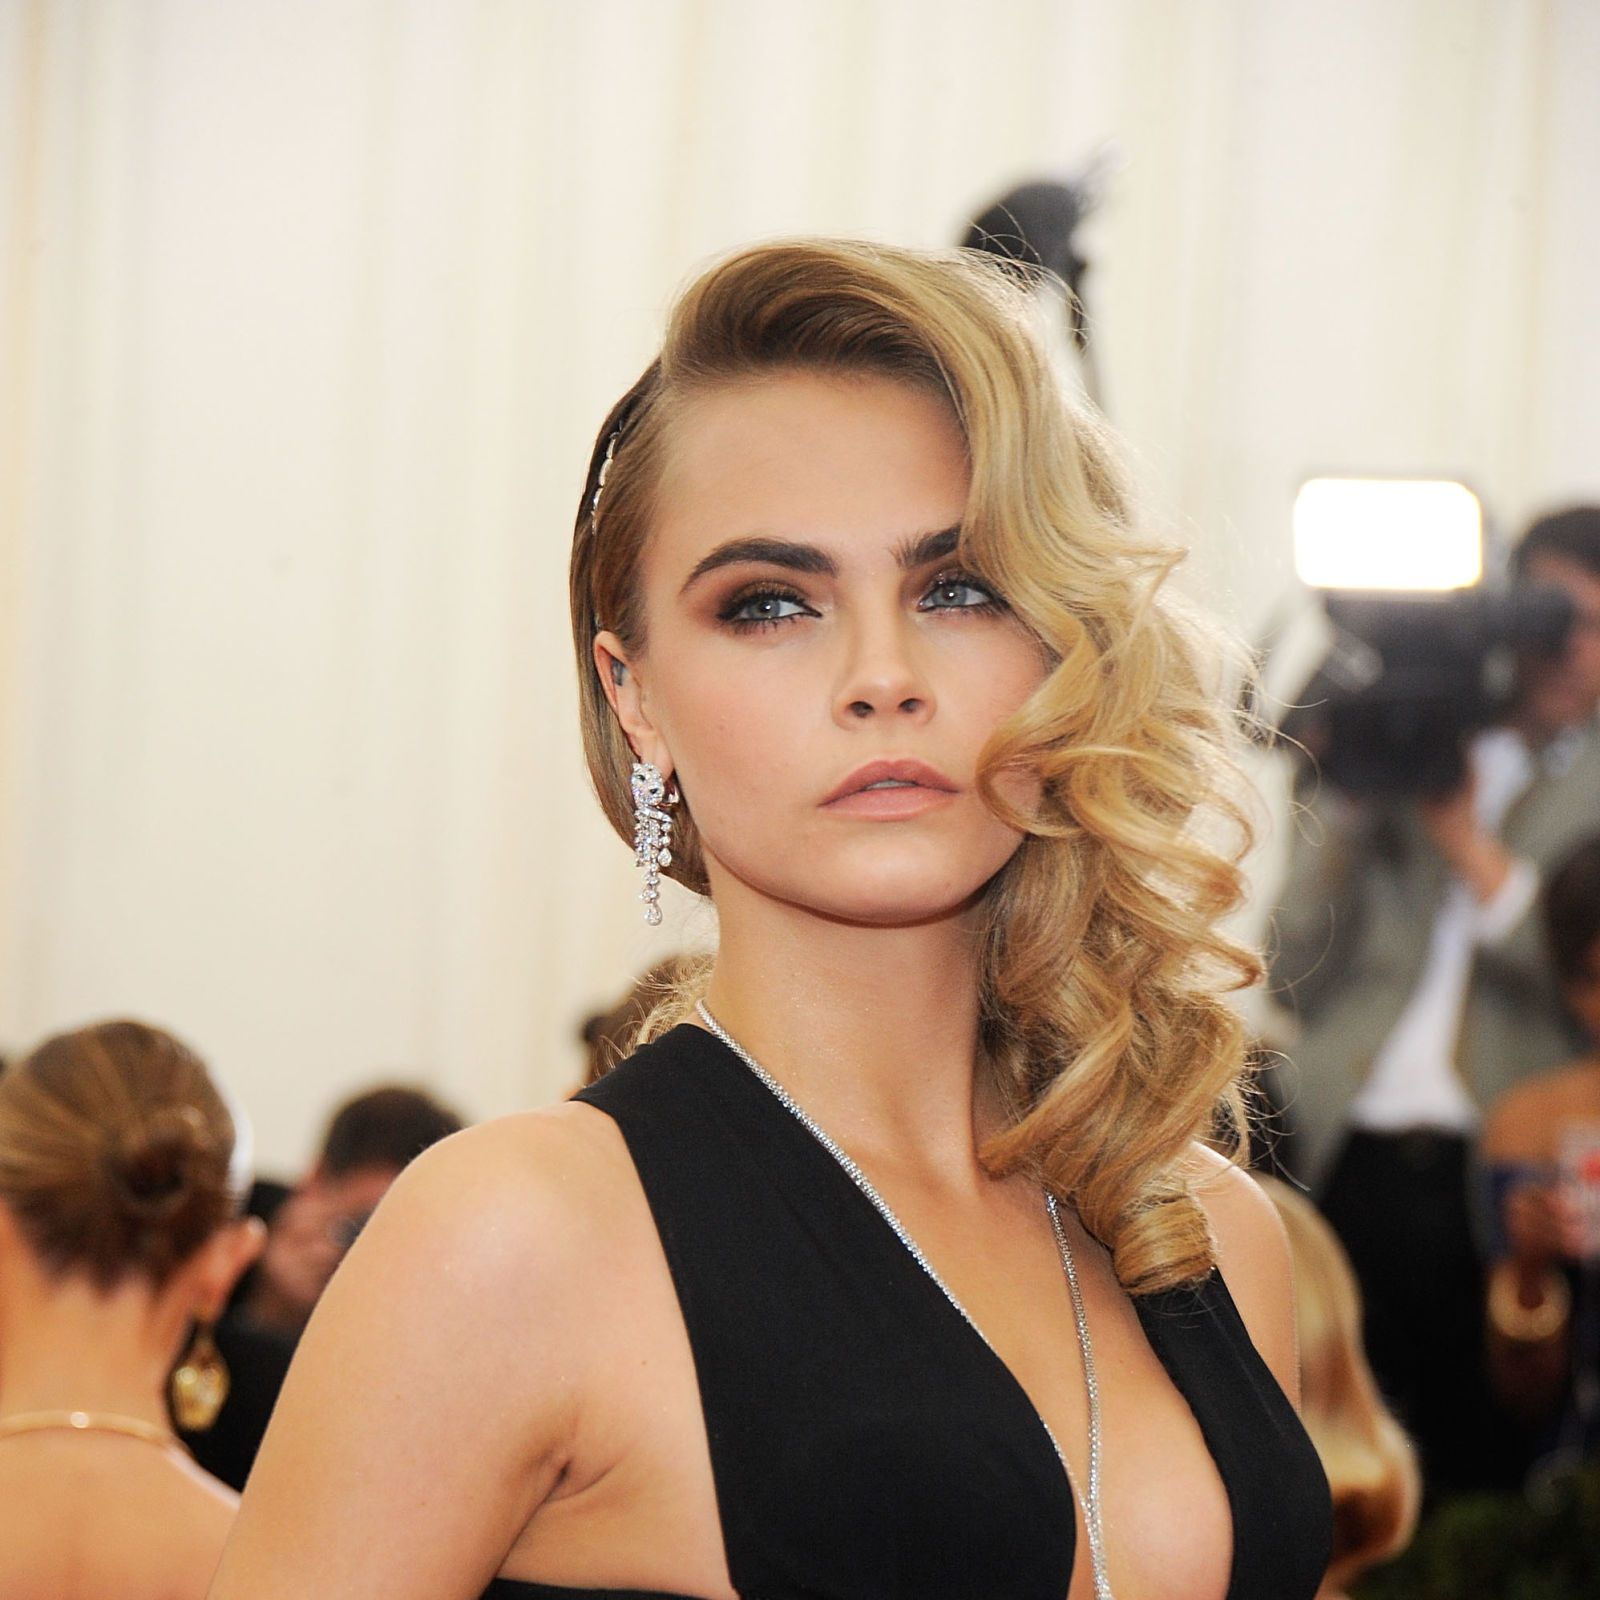 Cara Delevingne party hair inspiration - and how to recreate the hairstyles - best celebrity party hairstyles 2014